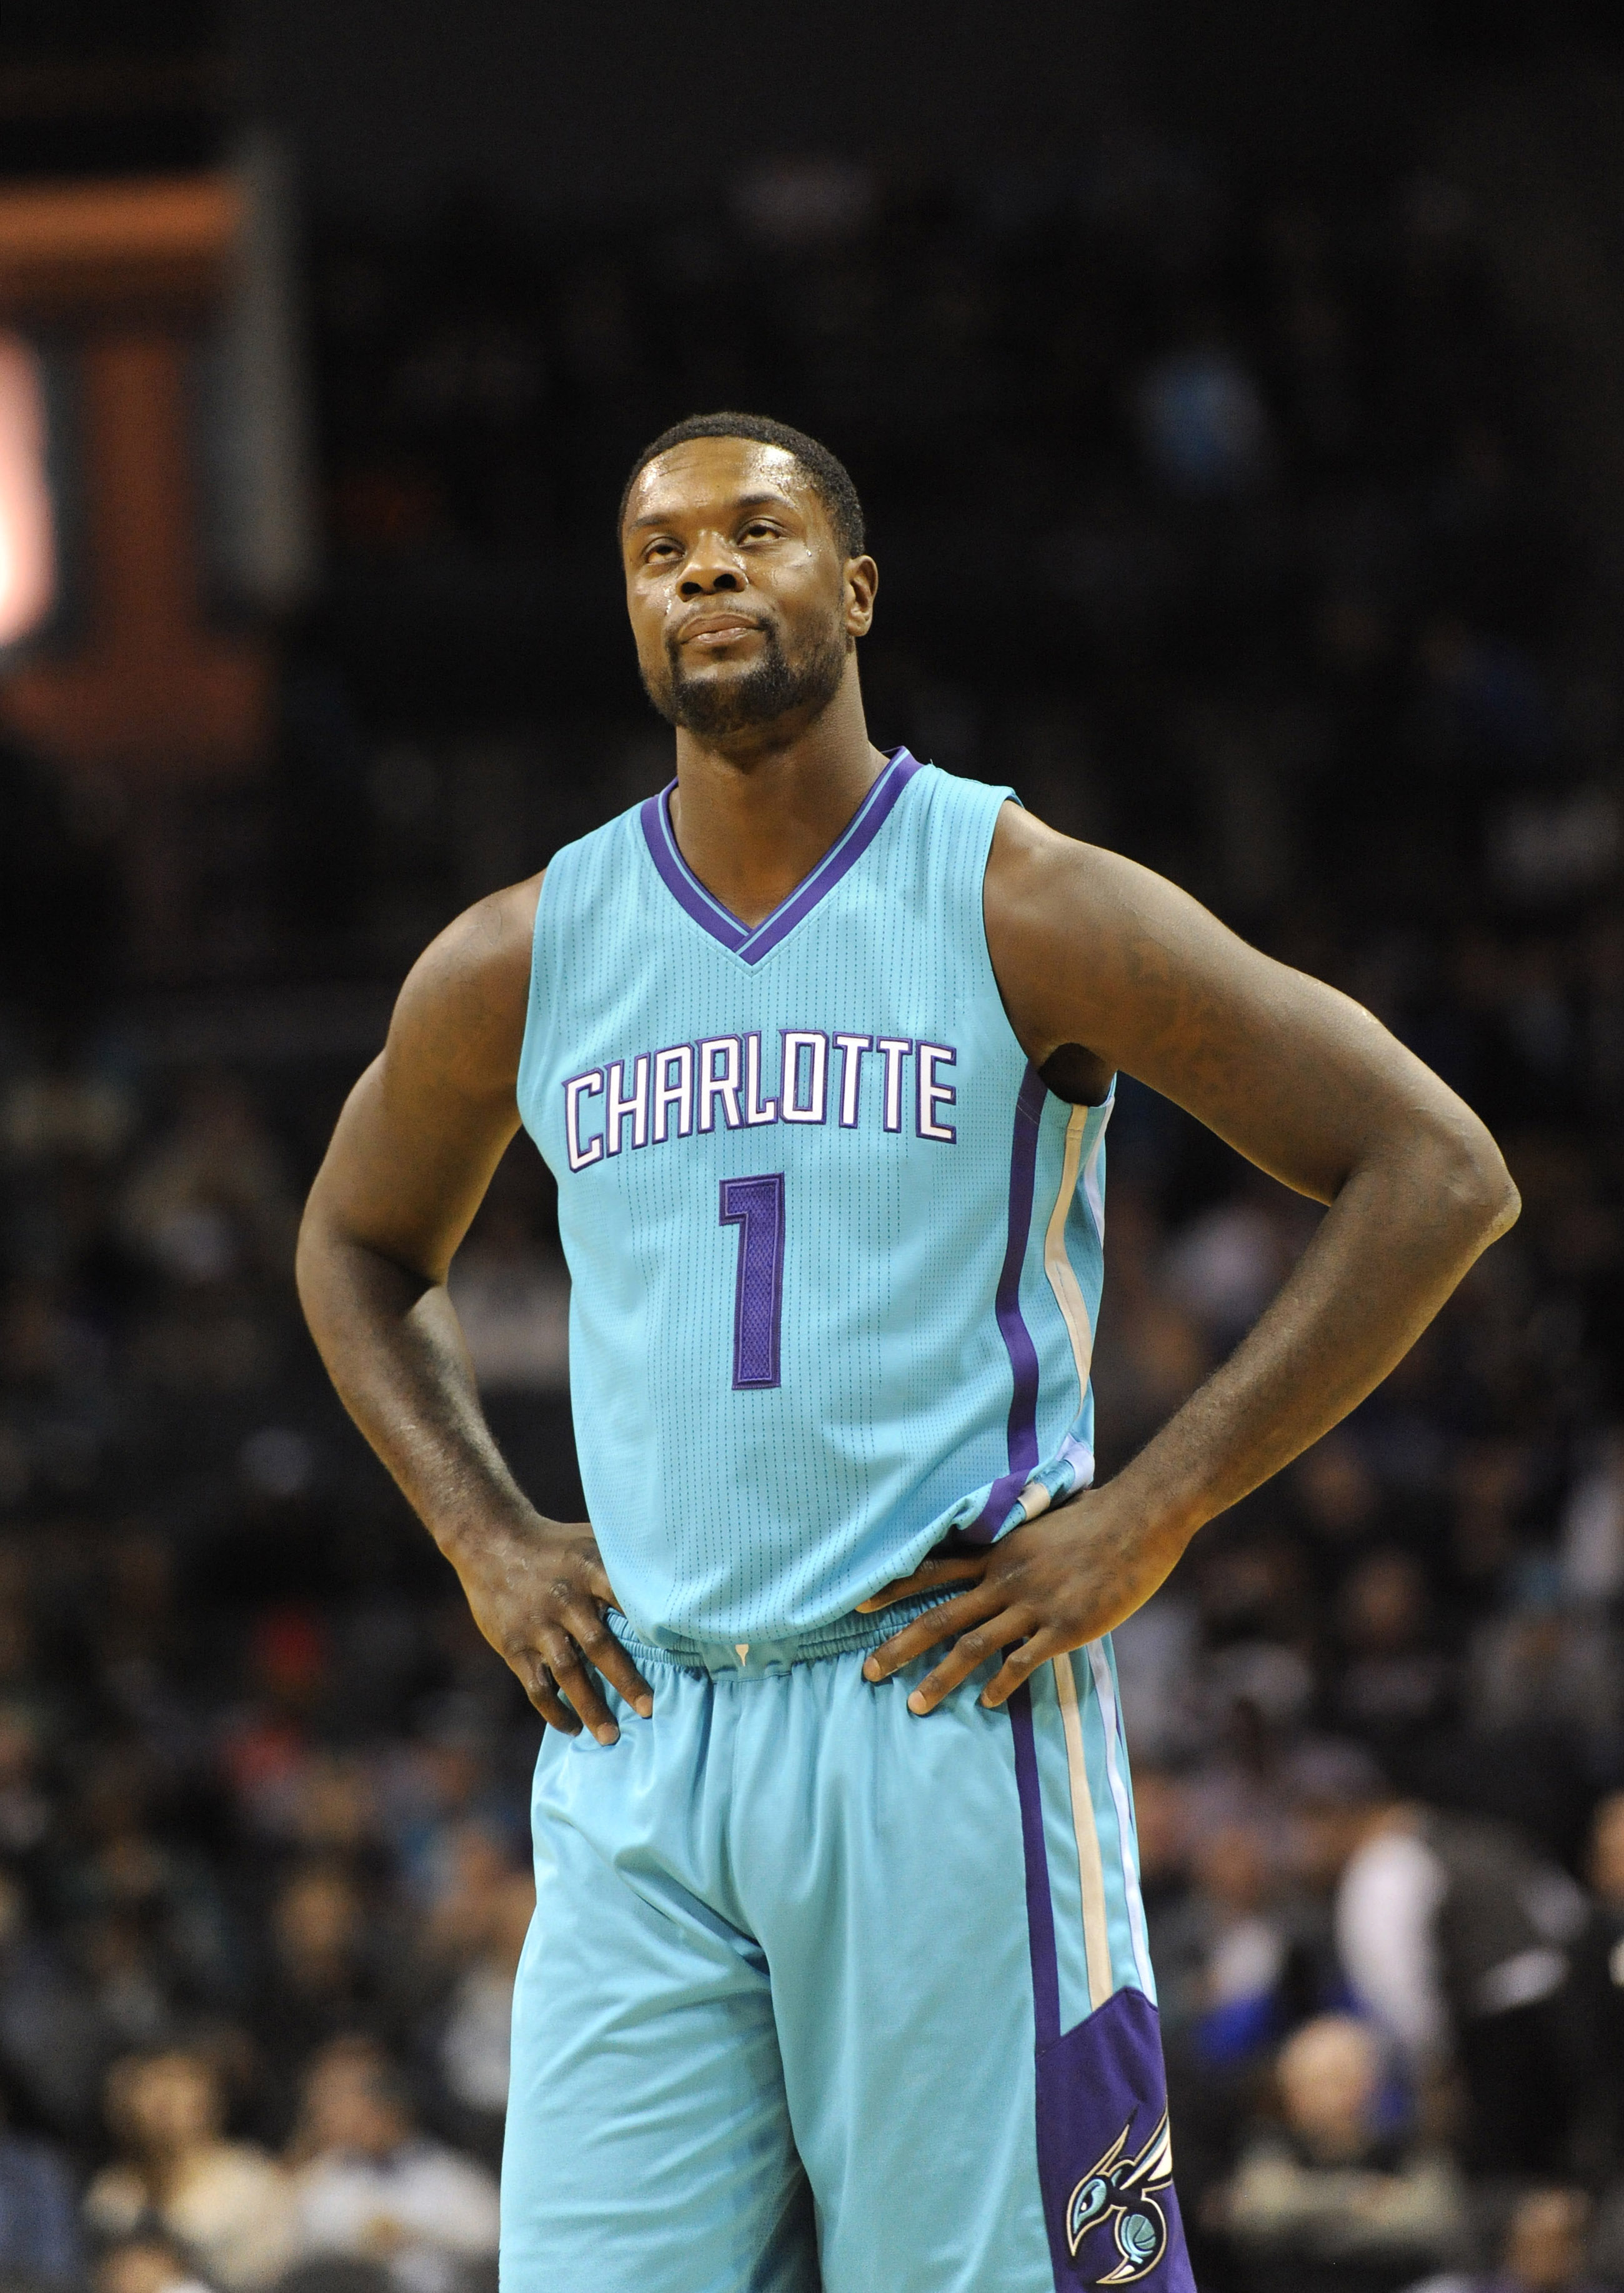 Hornets already looking to trade Lance Stephenson, according to report